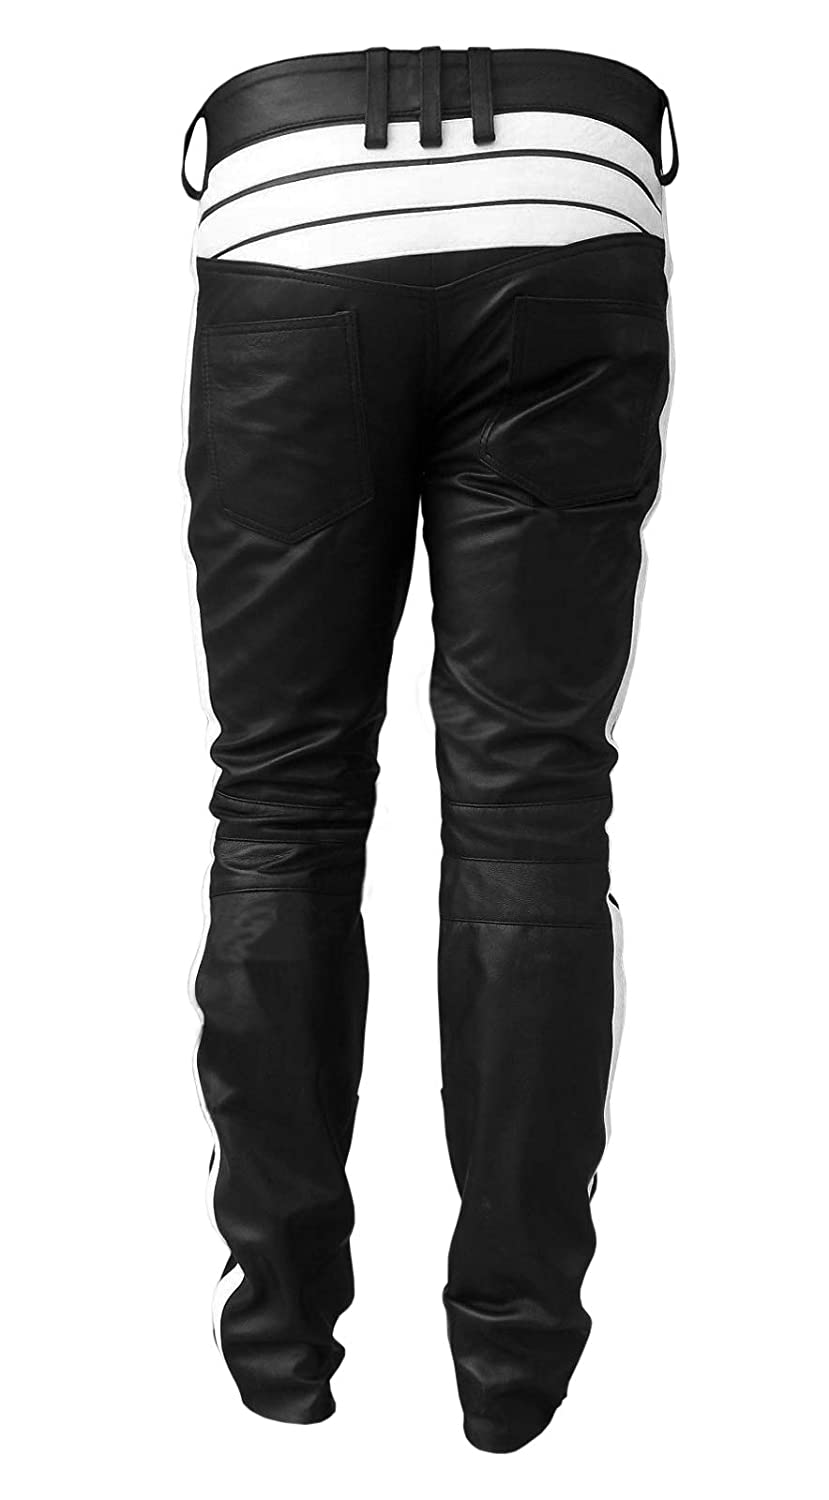 Mens Real Black Cow Leather Jeans Motorcycle Bikers Jeans Pants Trouser